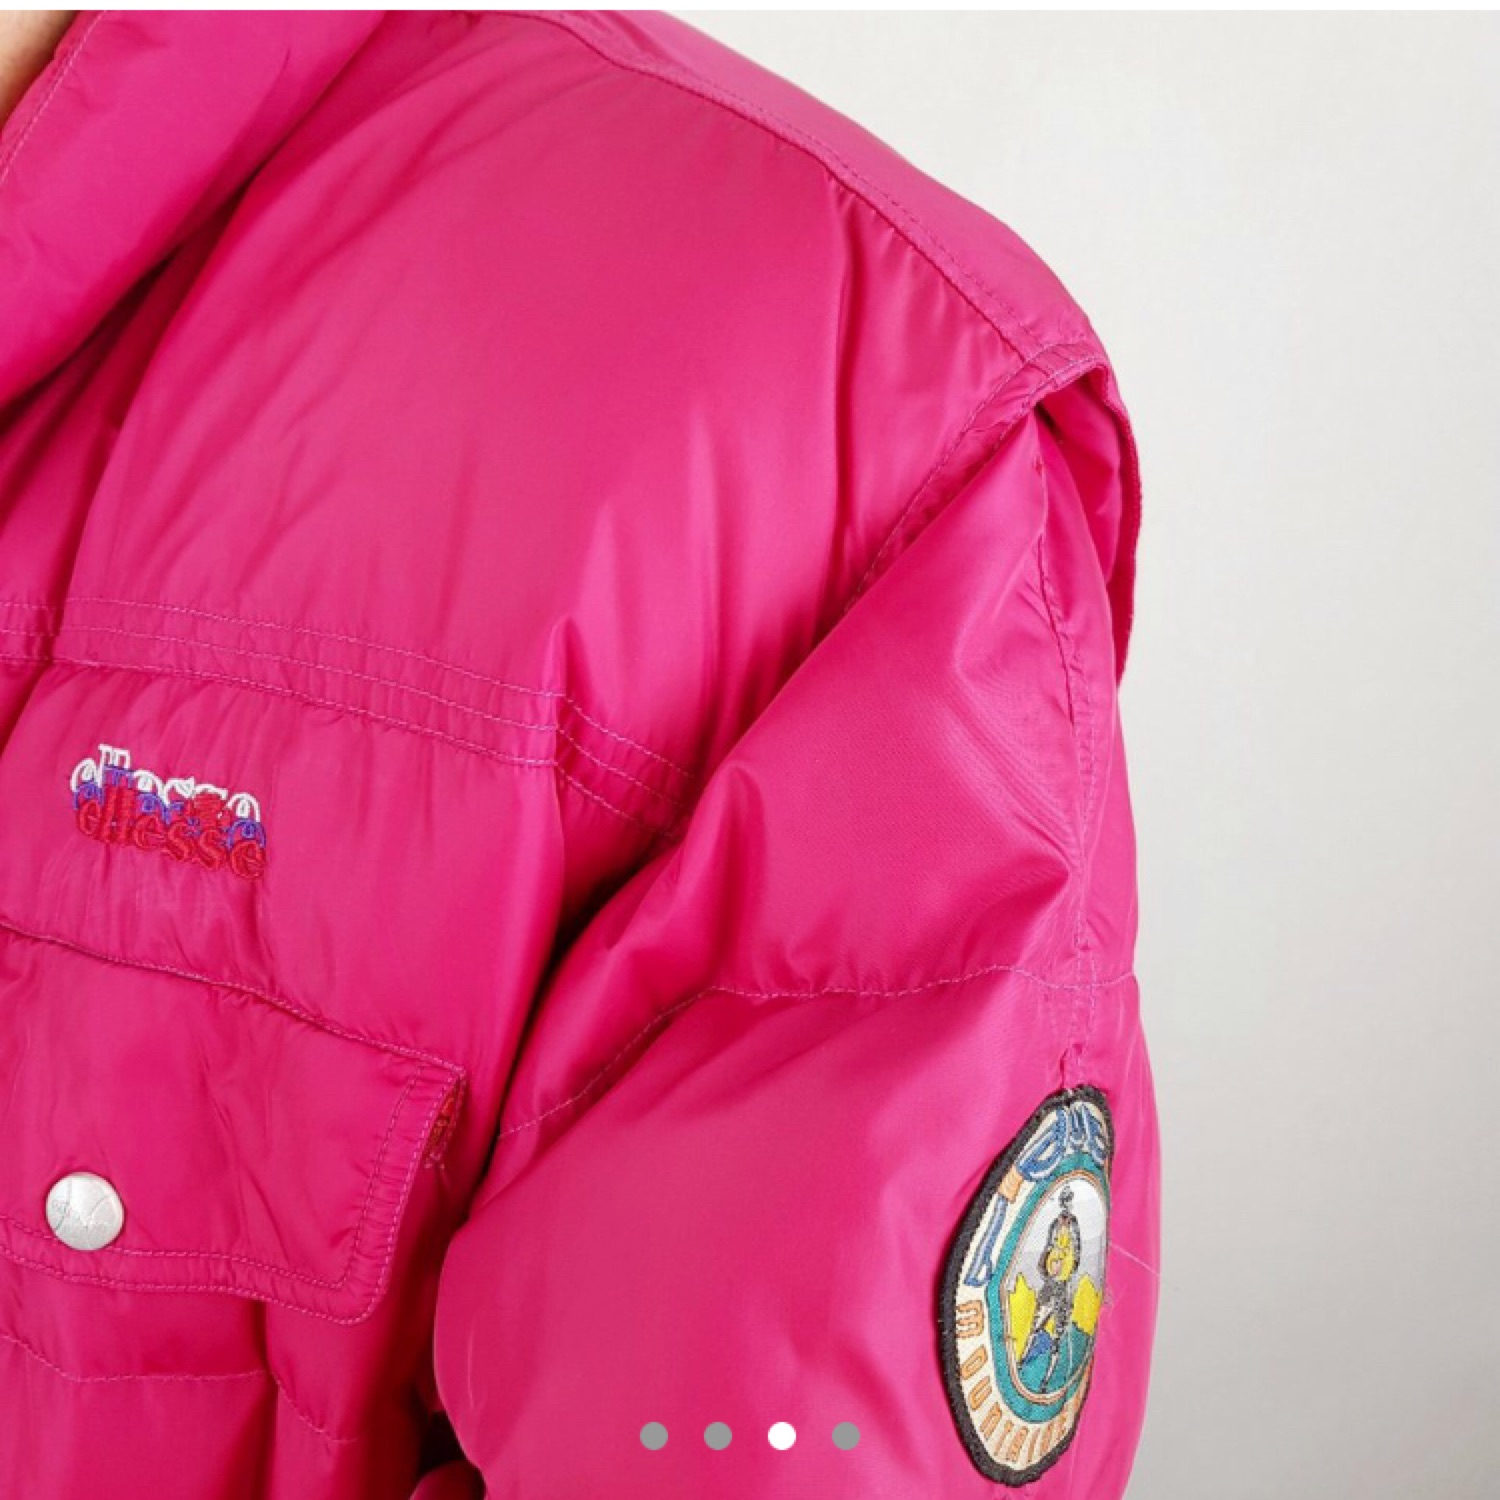 d64cb9a1 Vintage Ellesse Thick Puffer Jacket Pink